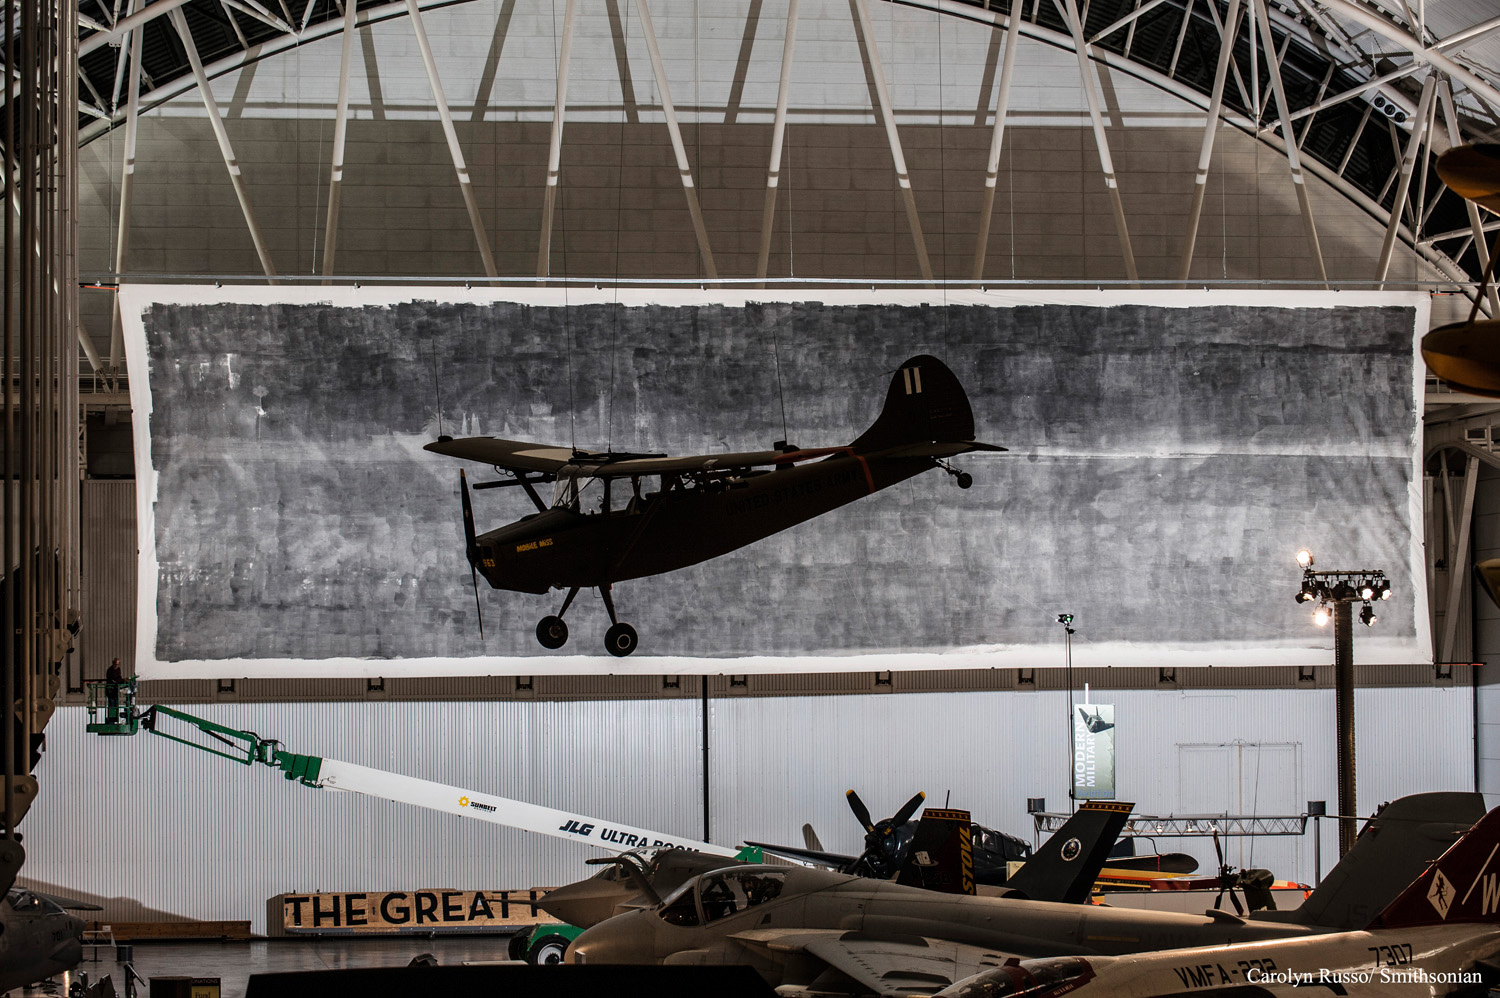 The Great Picture on view at the Smithsonian National Air and Space Museum 2014. (Udvar-Hazy Center)